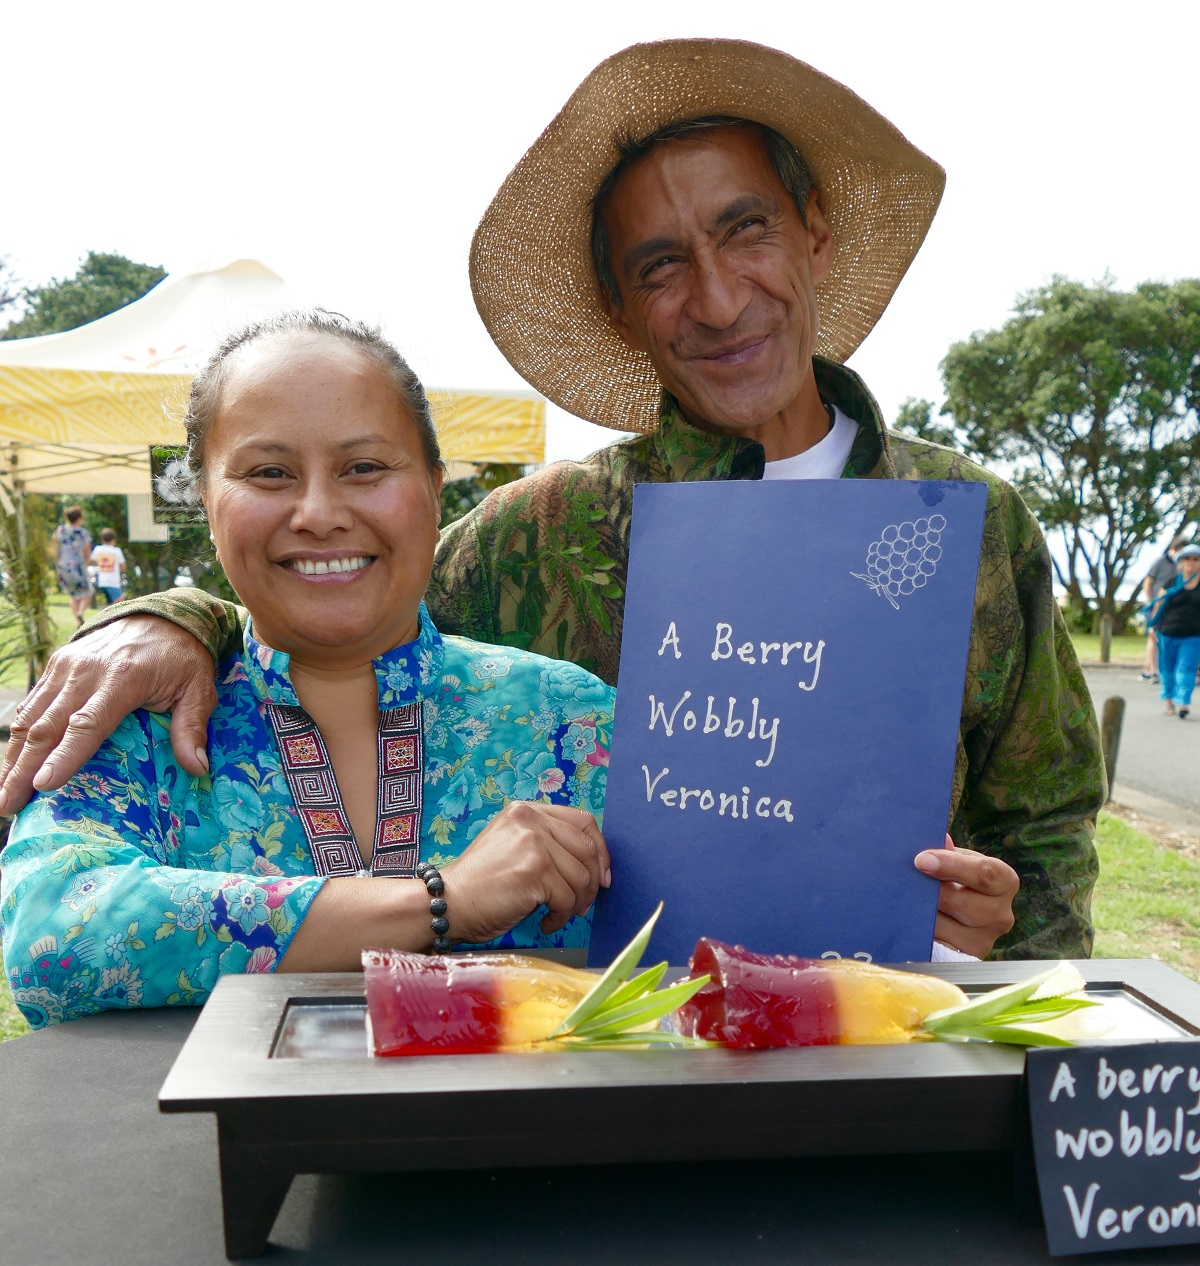 Caroline Johnstone Award - Kay Henare 'A Berry Wobbly Veronica' A plant species once known as Veronica & its Maori name Koromiko Jelly made with Koromiko gathered from the bush & local manuka honey. Homegrown blackberry sauce, drizzled honey and Koromiko chips